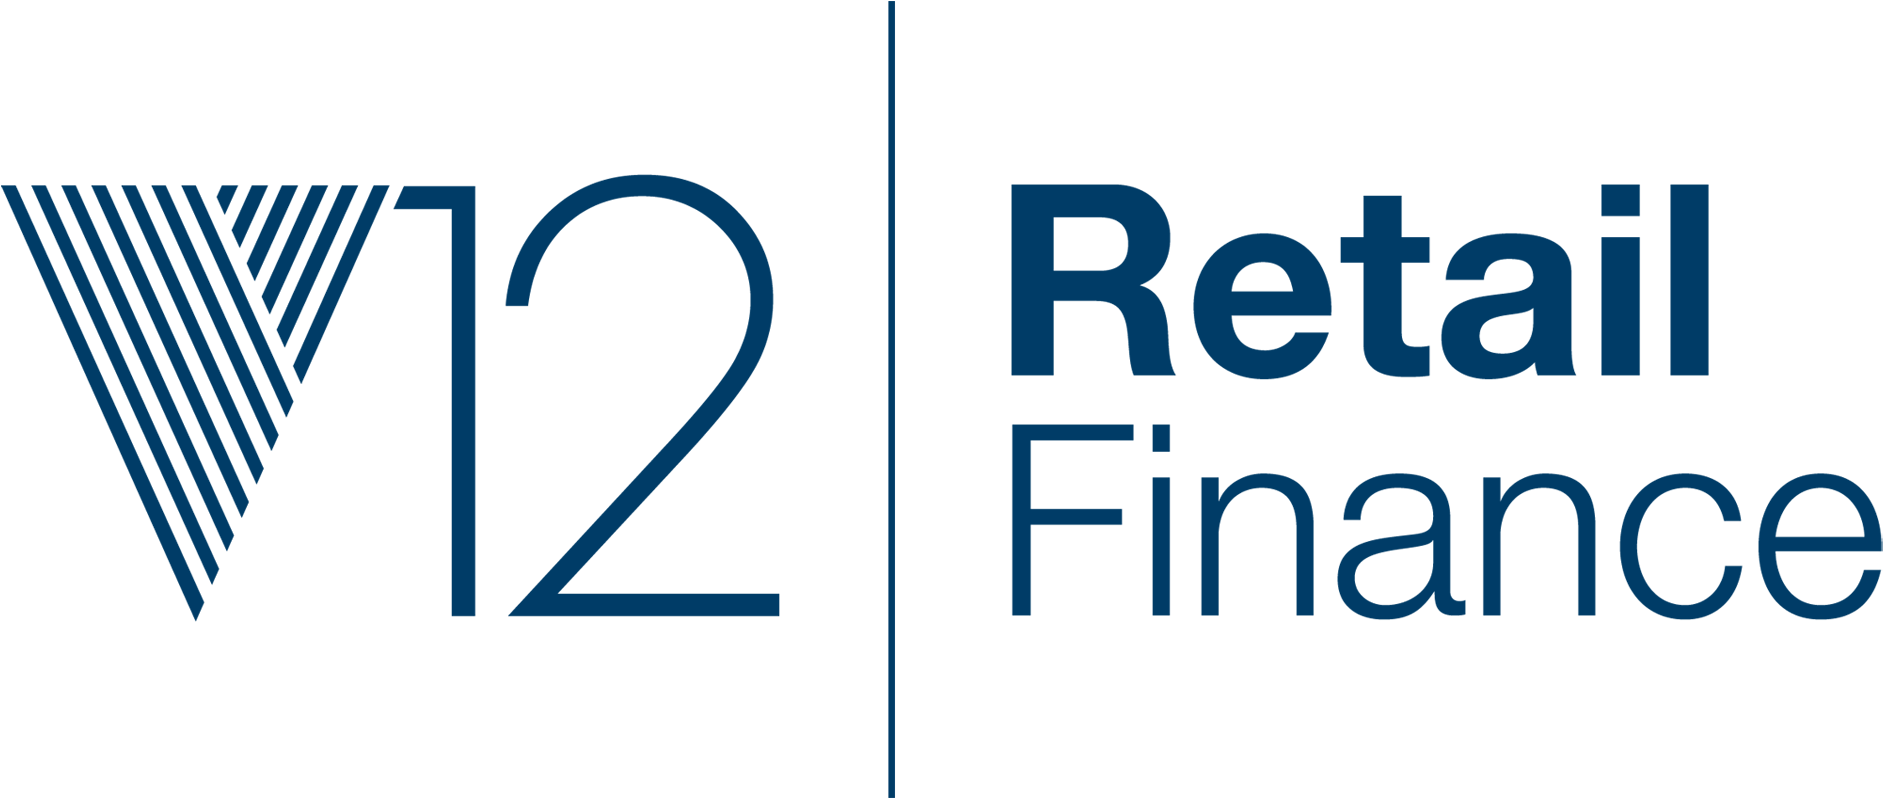 The Furniture Market finance is provided through V12 Finance